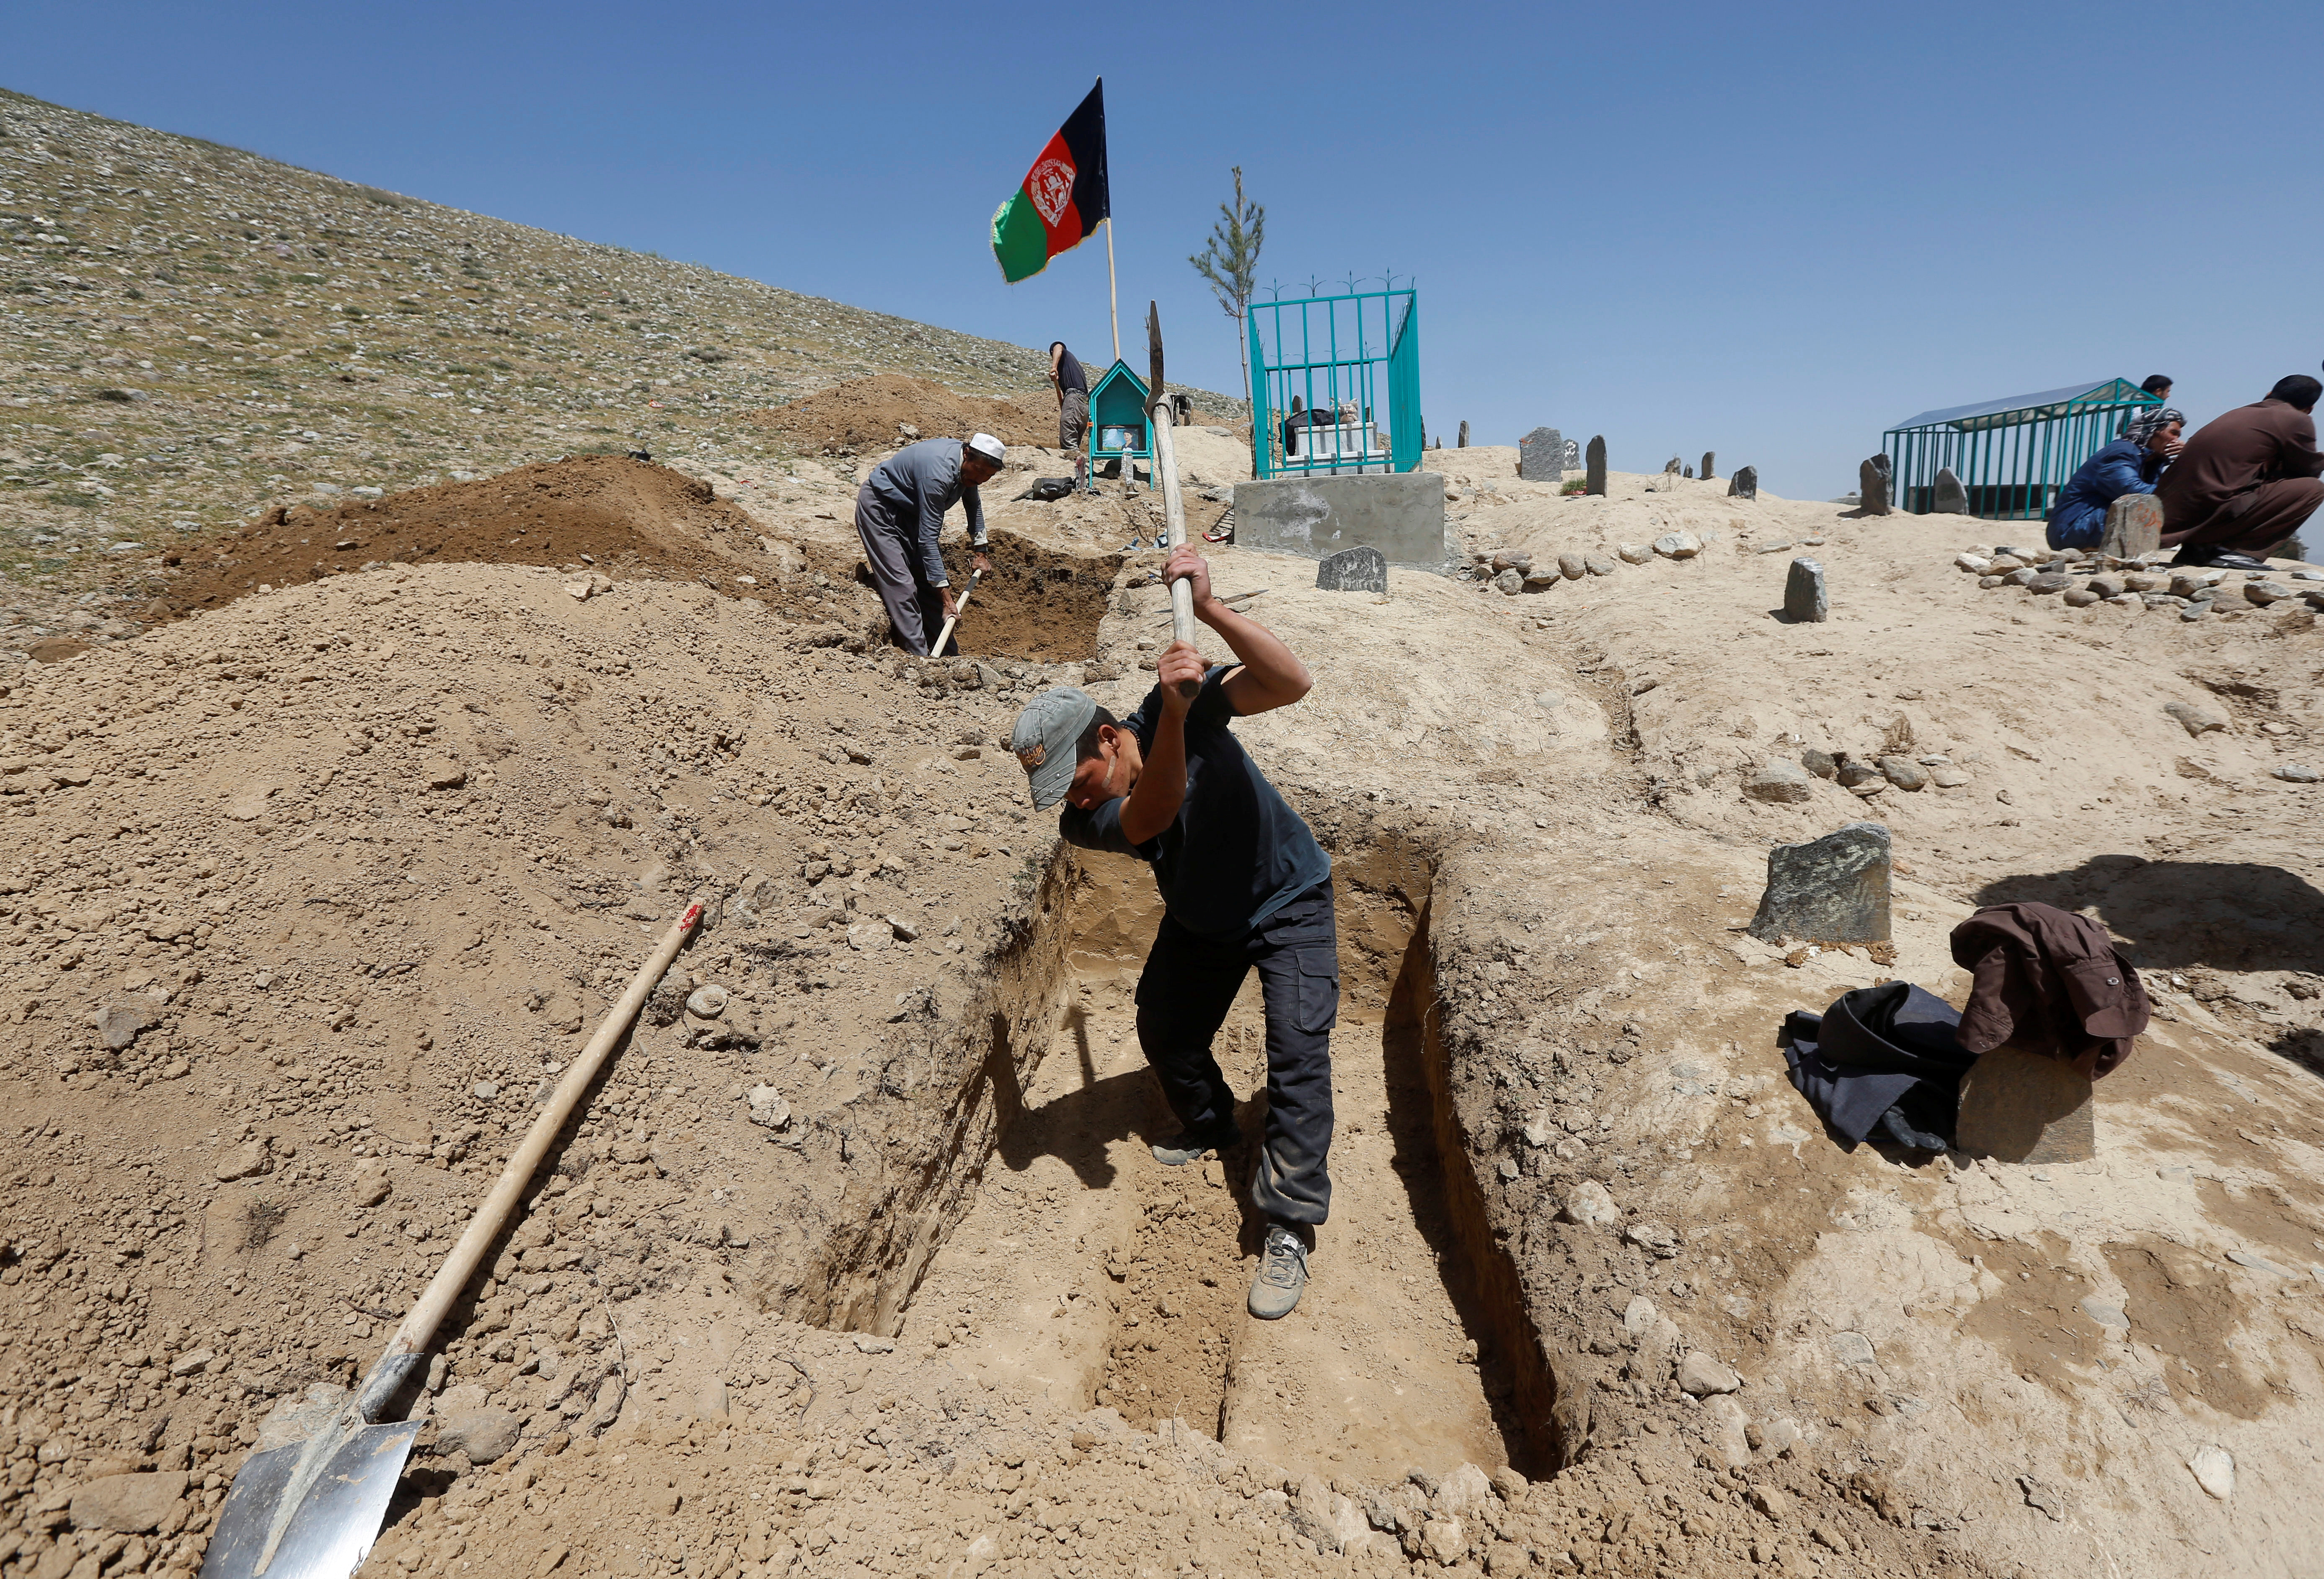 Afghan men dig graves for the victims of Sunday's suicide attack in Kabul, Afghanistan, April 23, 2018.